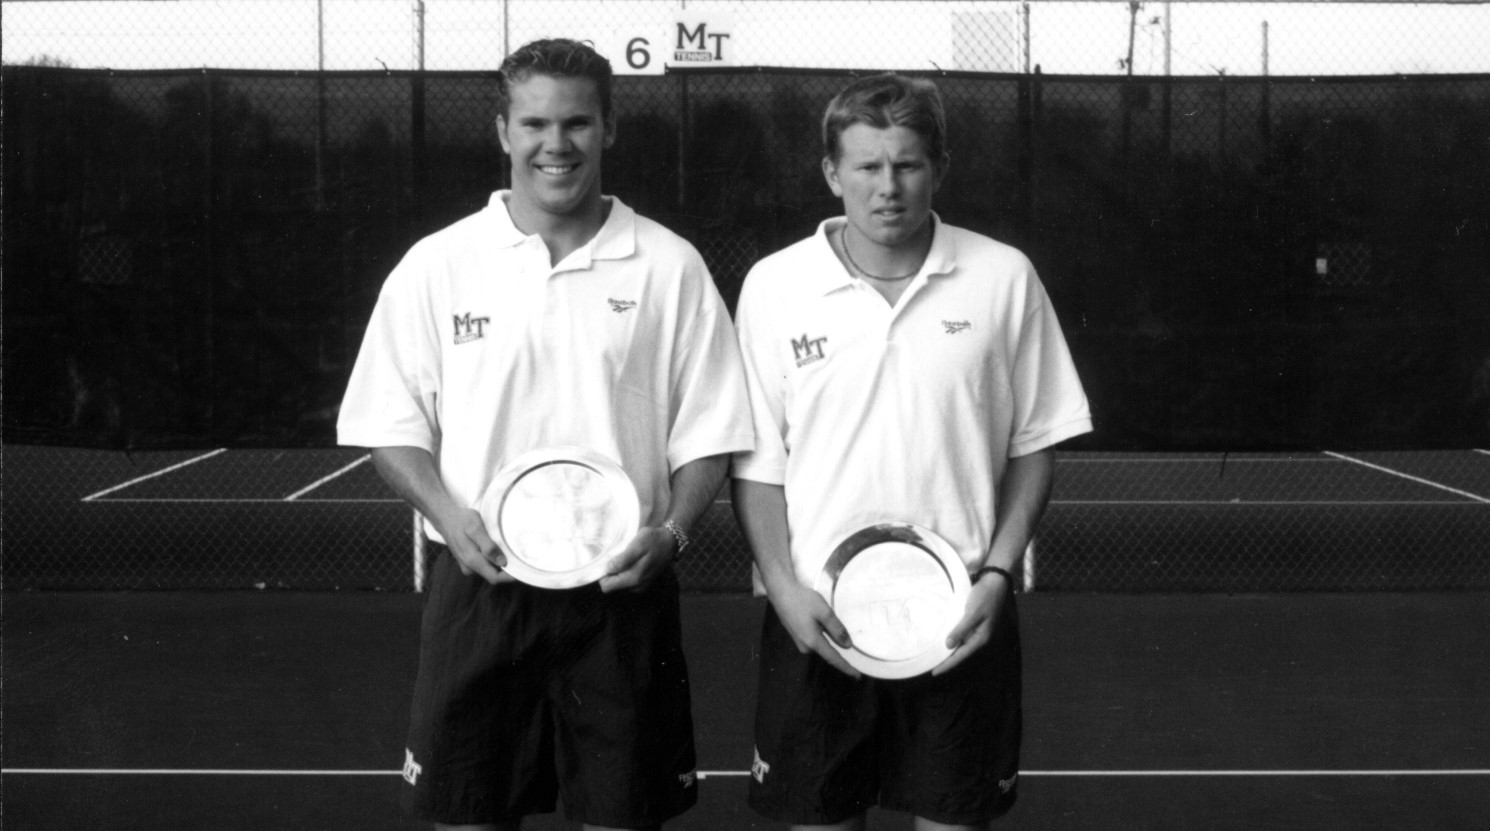 Hall of Fame: Dynamic doubles duo made MT history - Middle ...